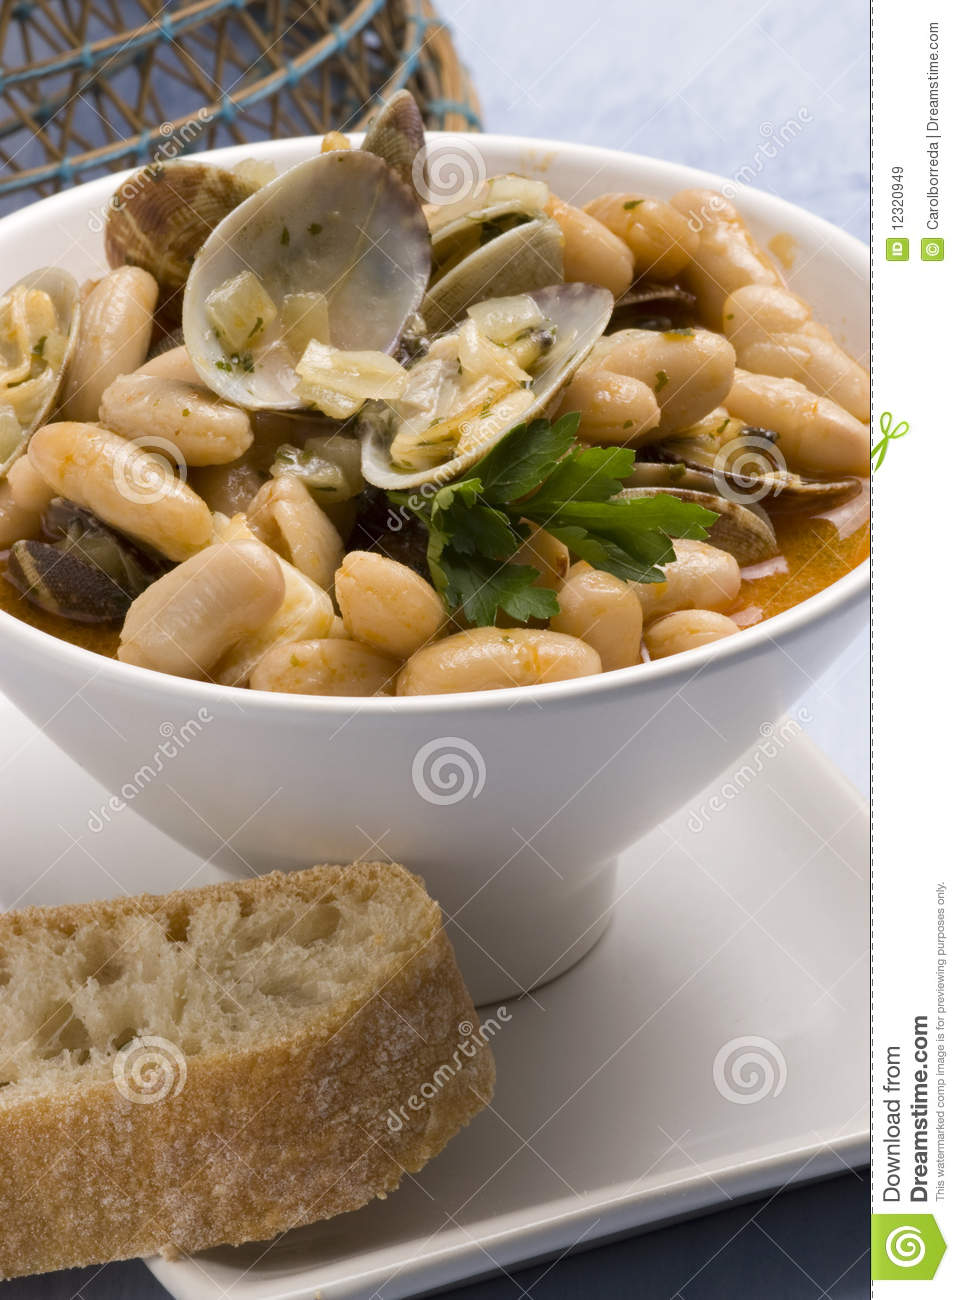 Clams and beans asturias style spanish cuisine royalty for Asturian cuisine